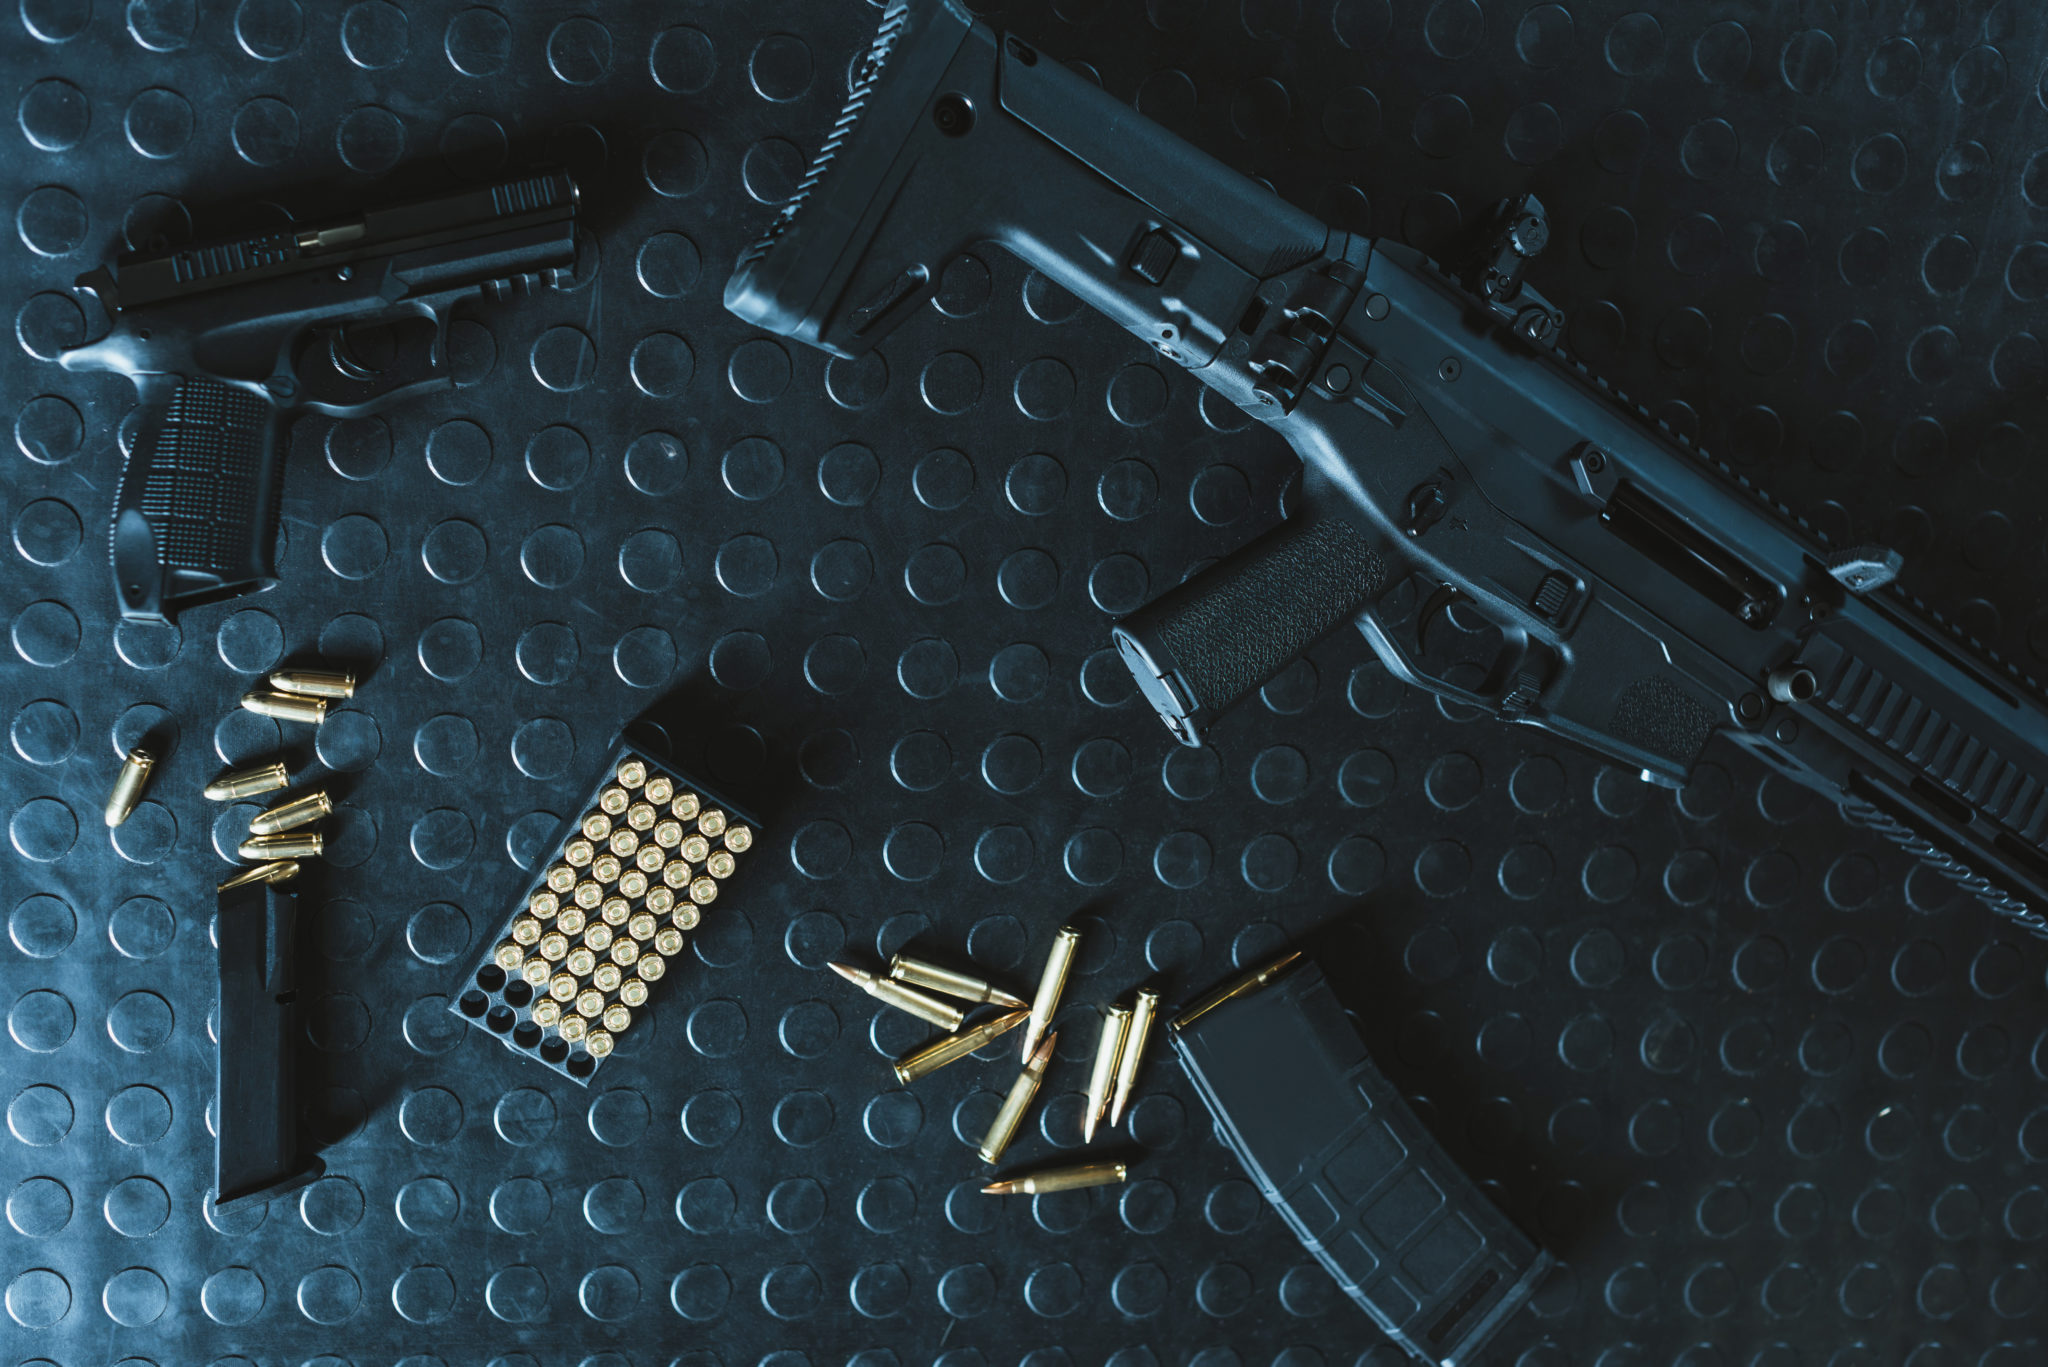 top view of gun and rifle with bullets on table